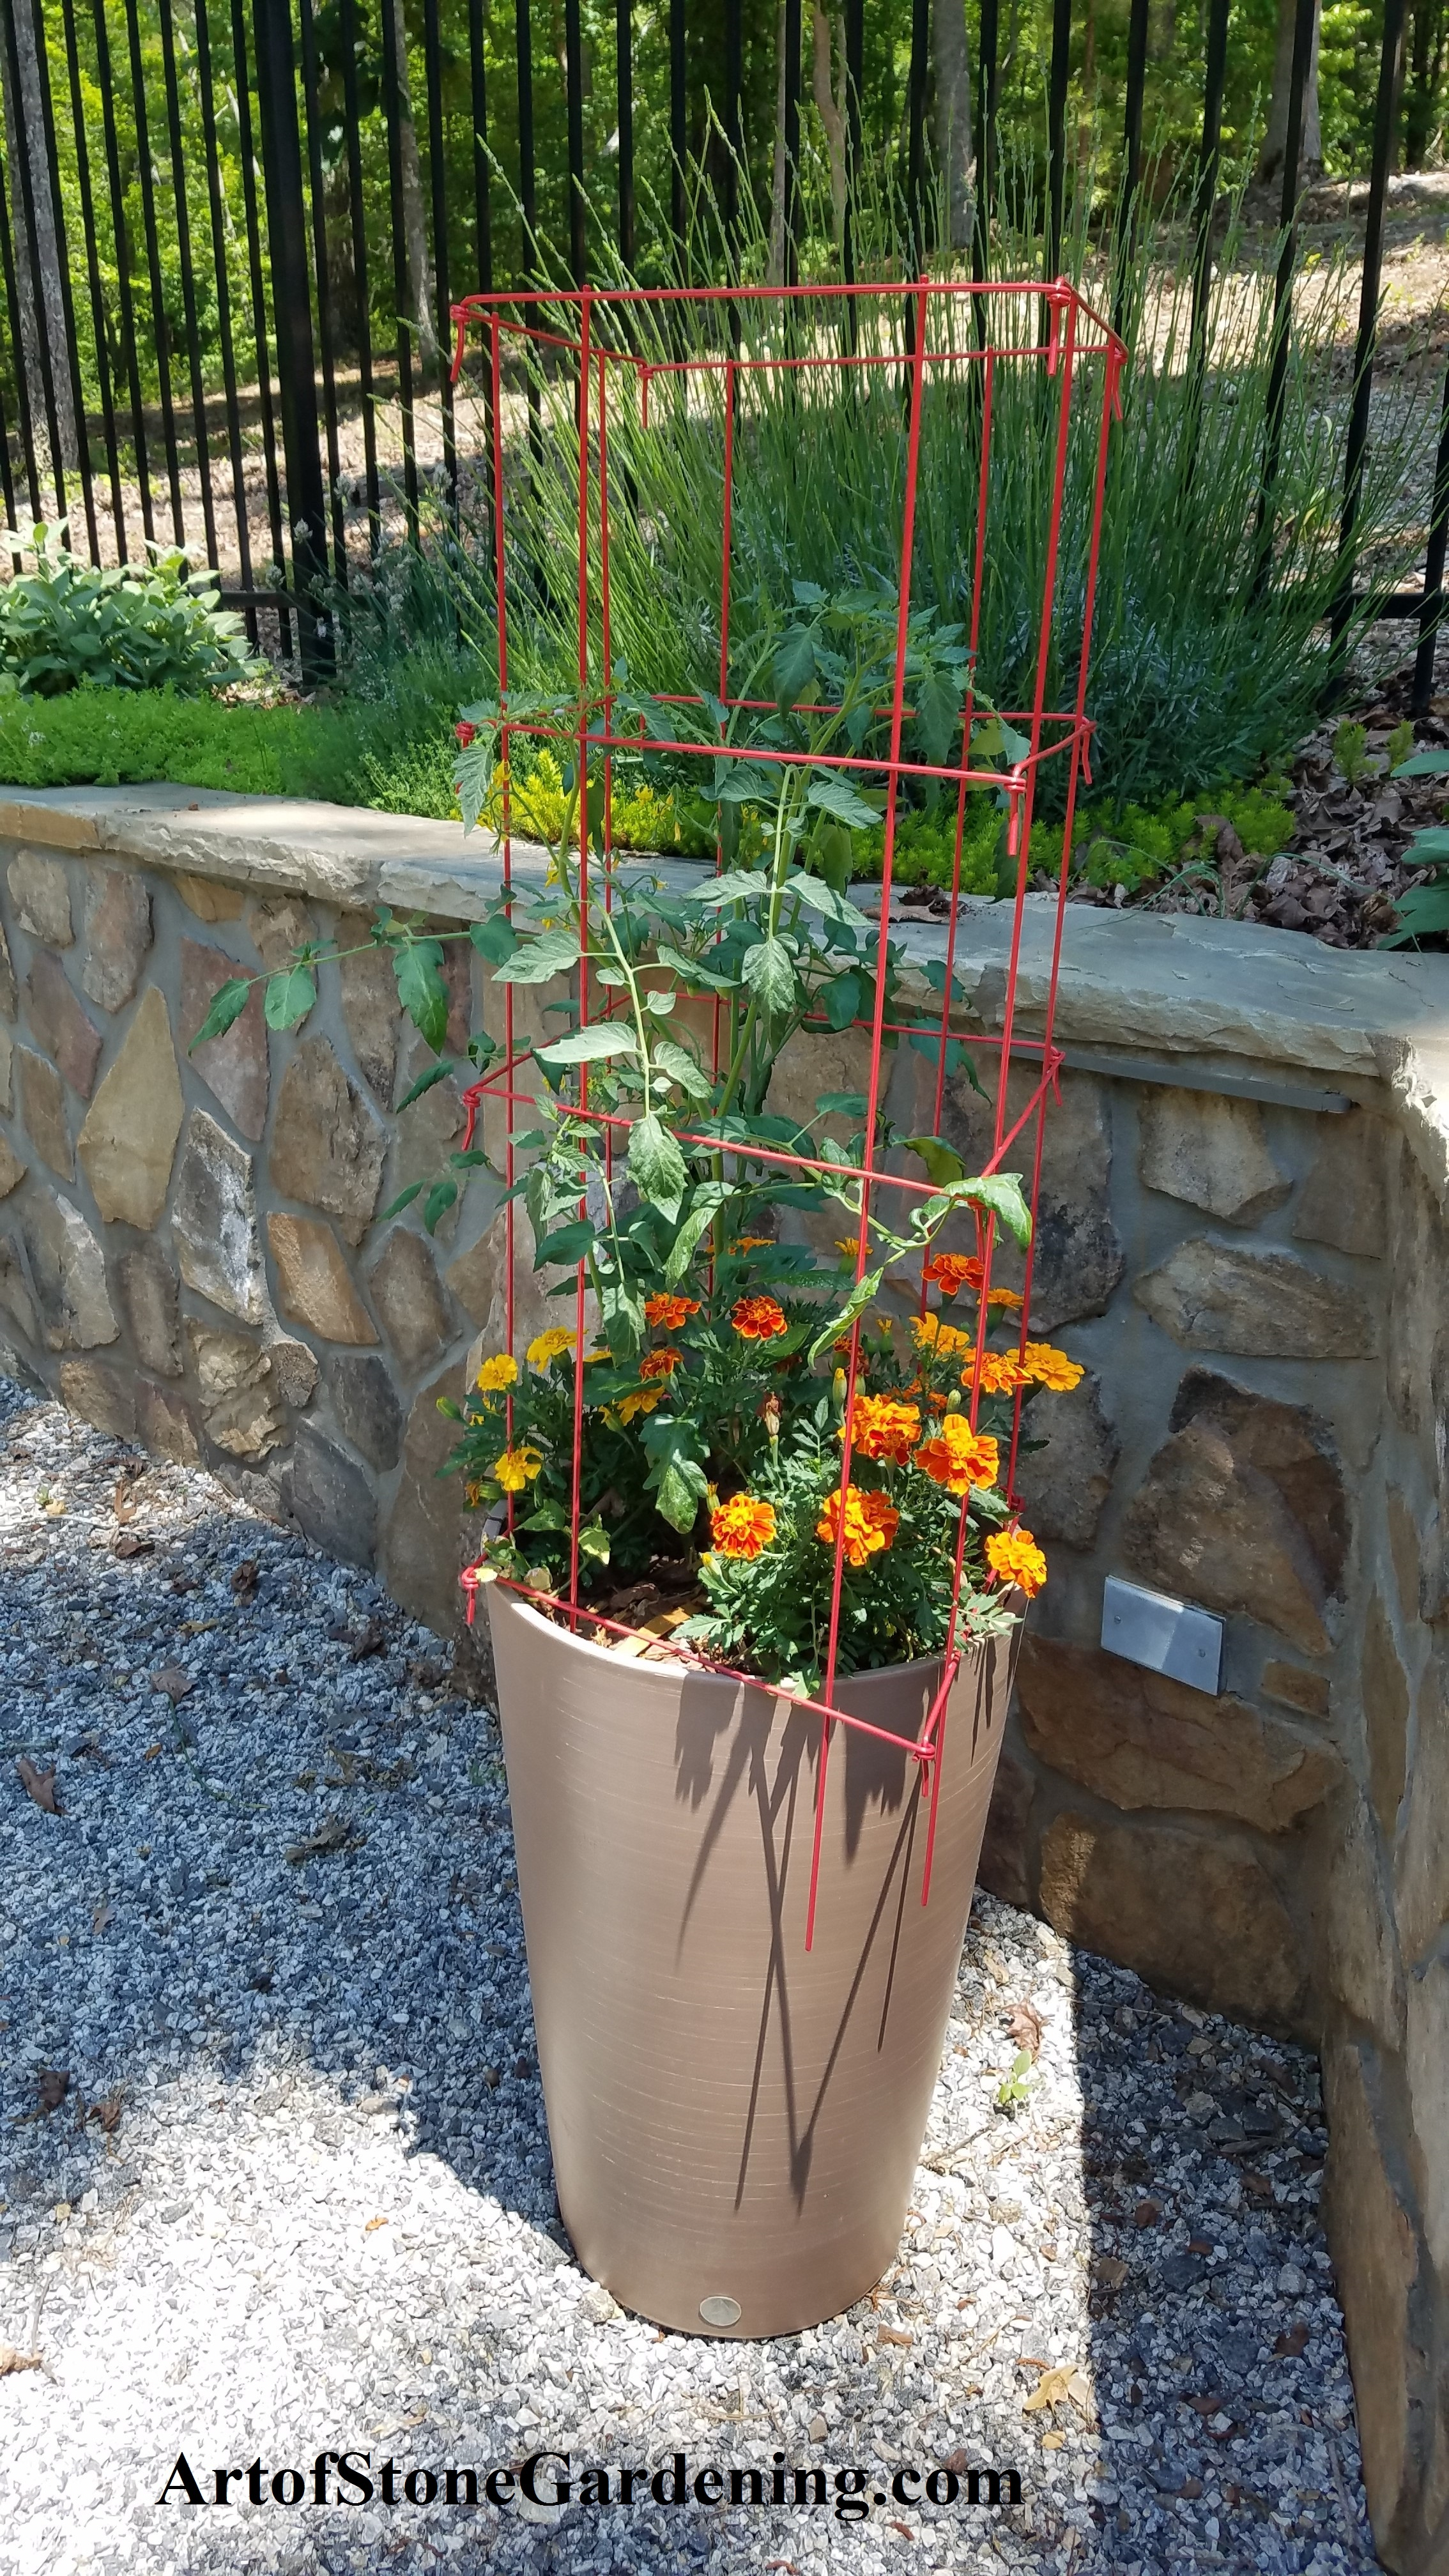 Marigolds and tomatoes in pot